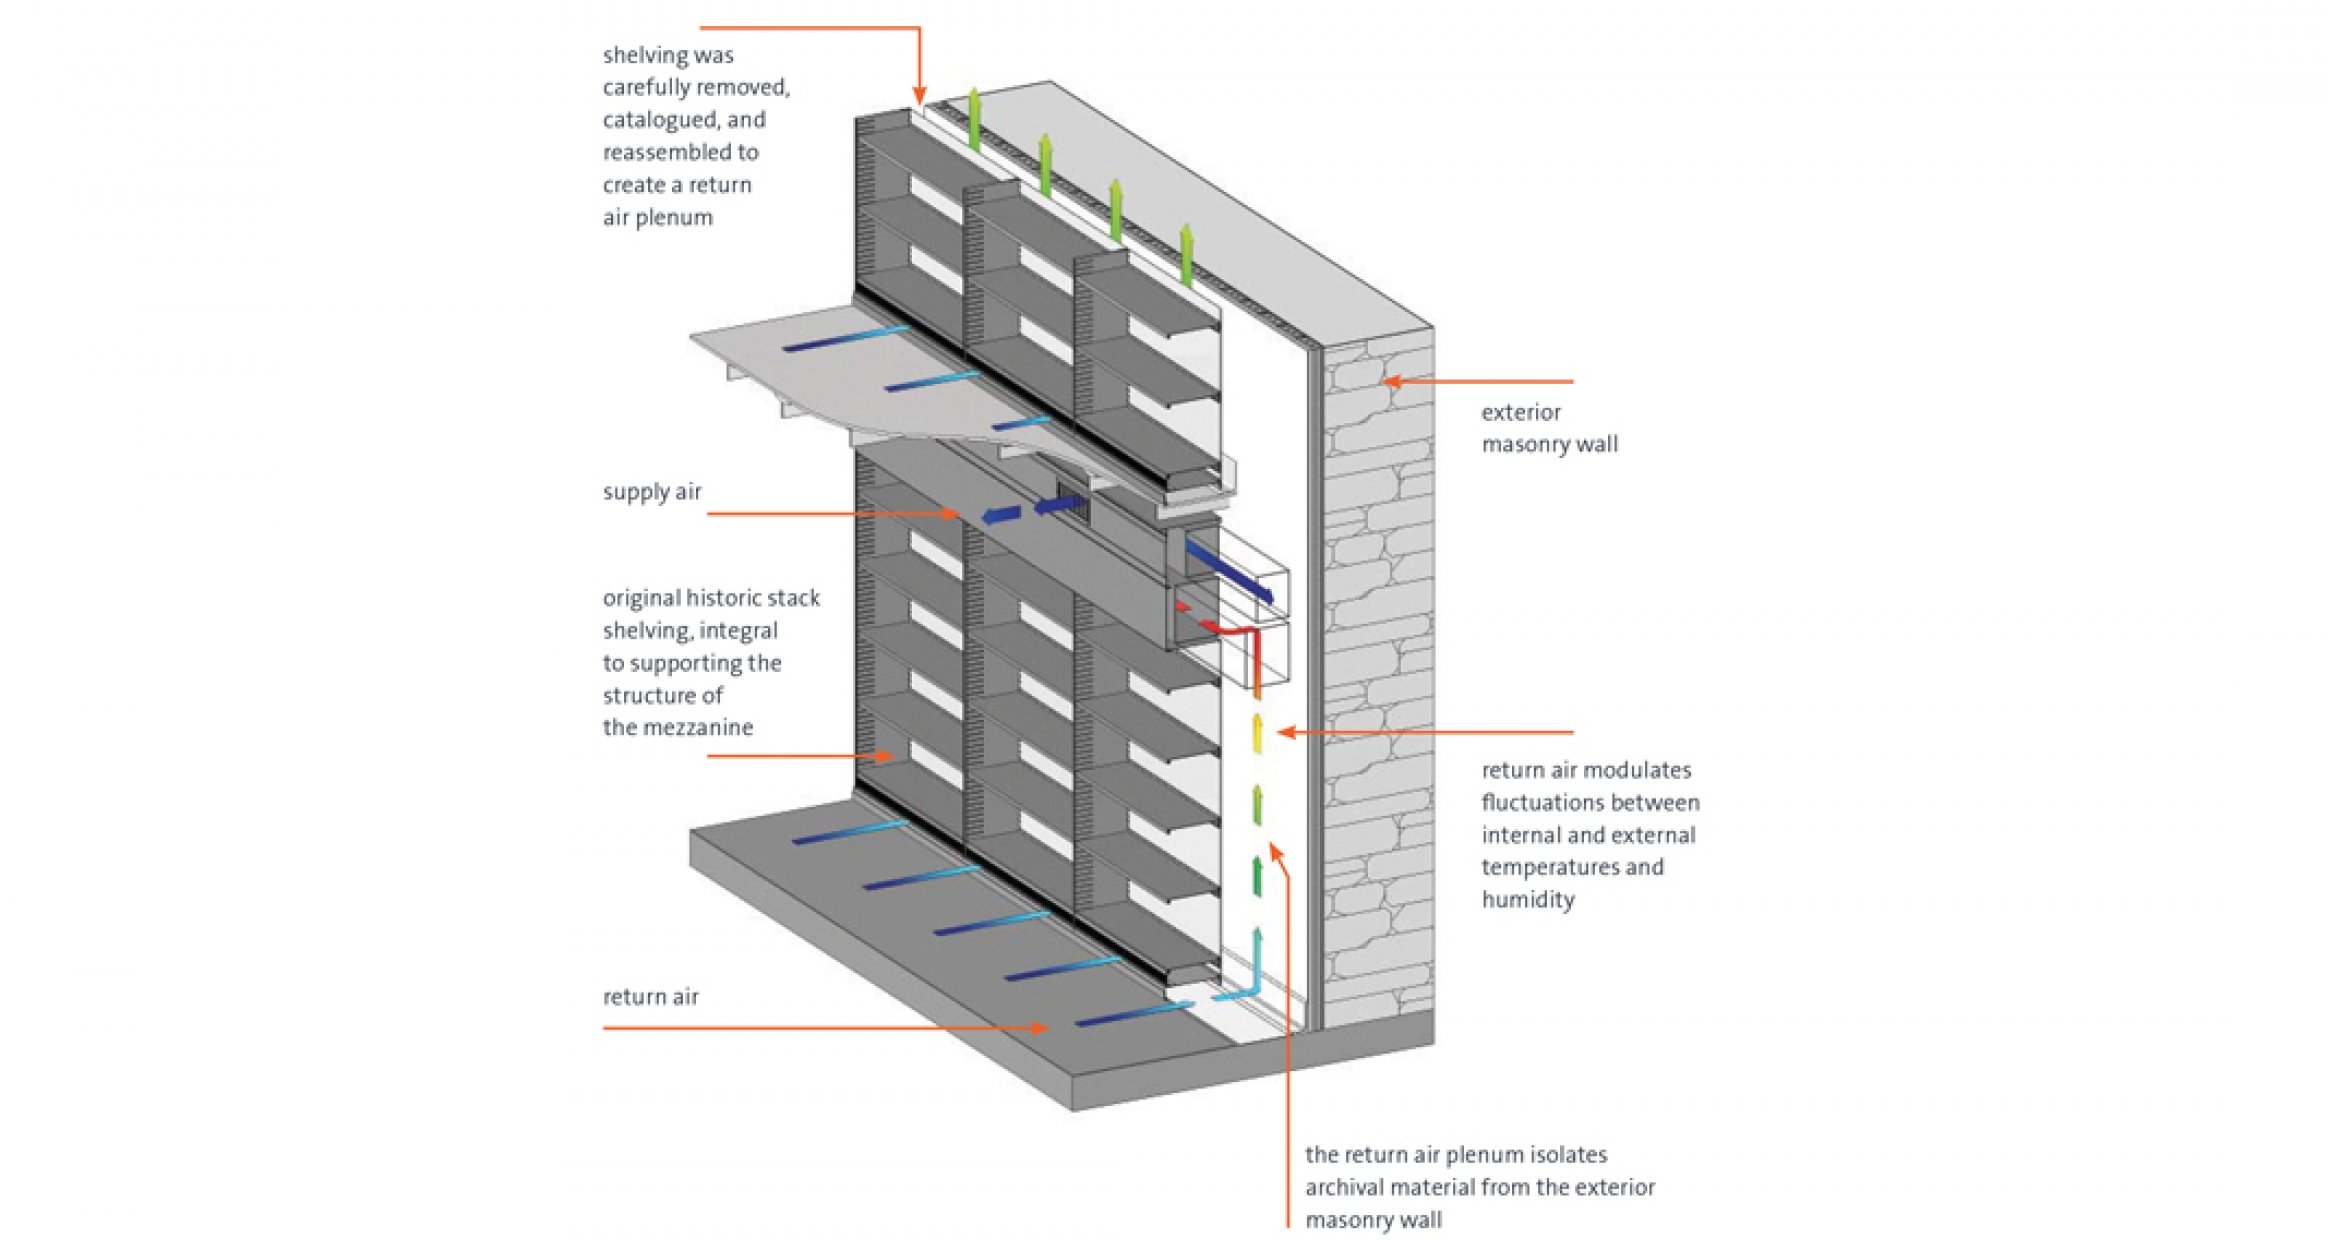 Shelving ventilation diagram